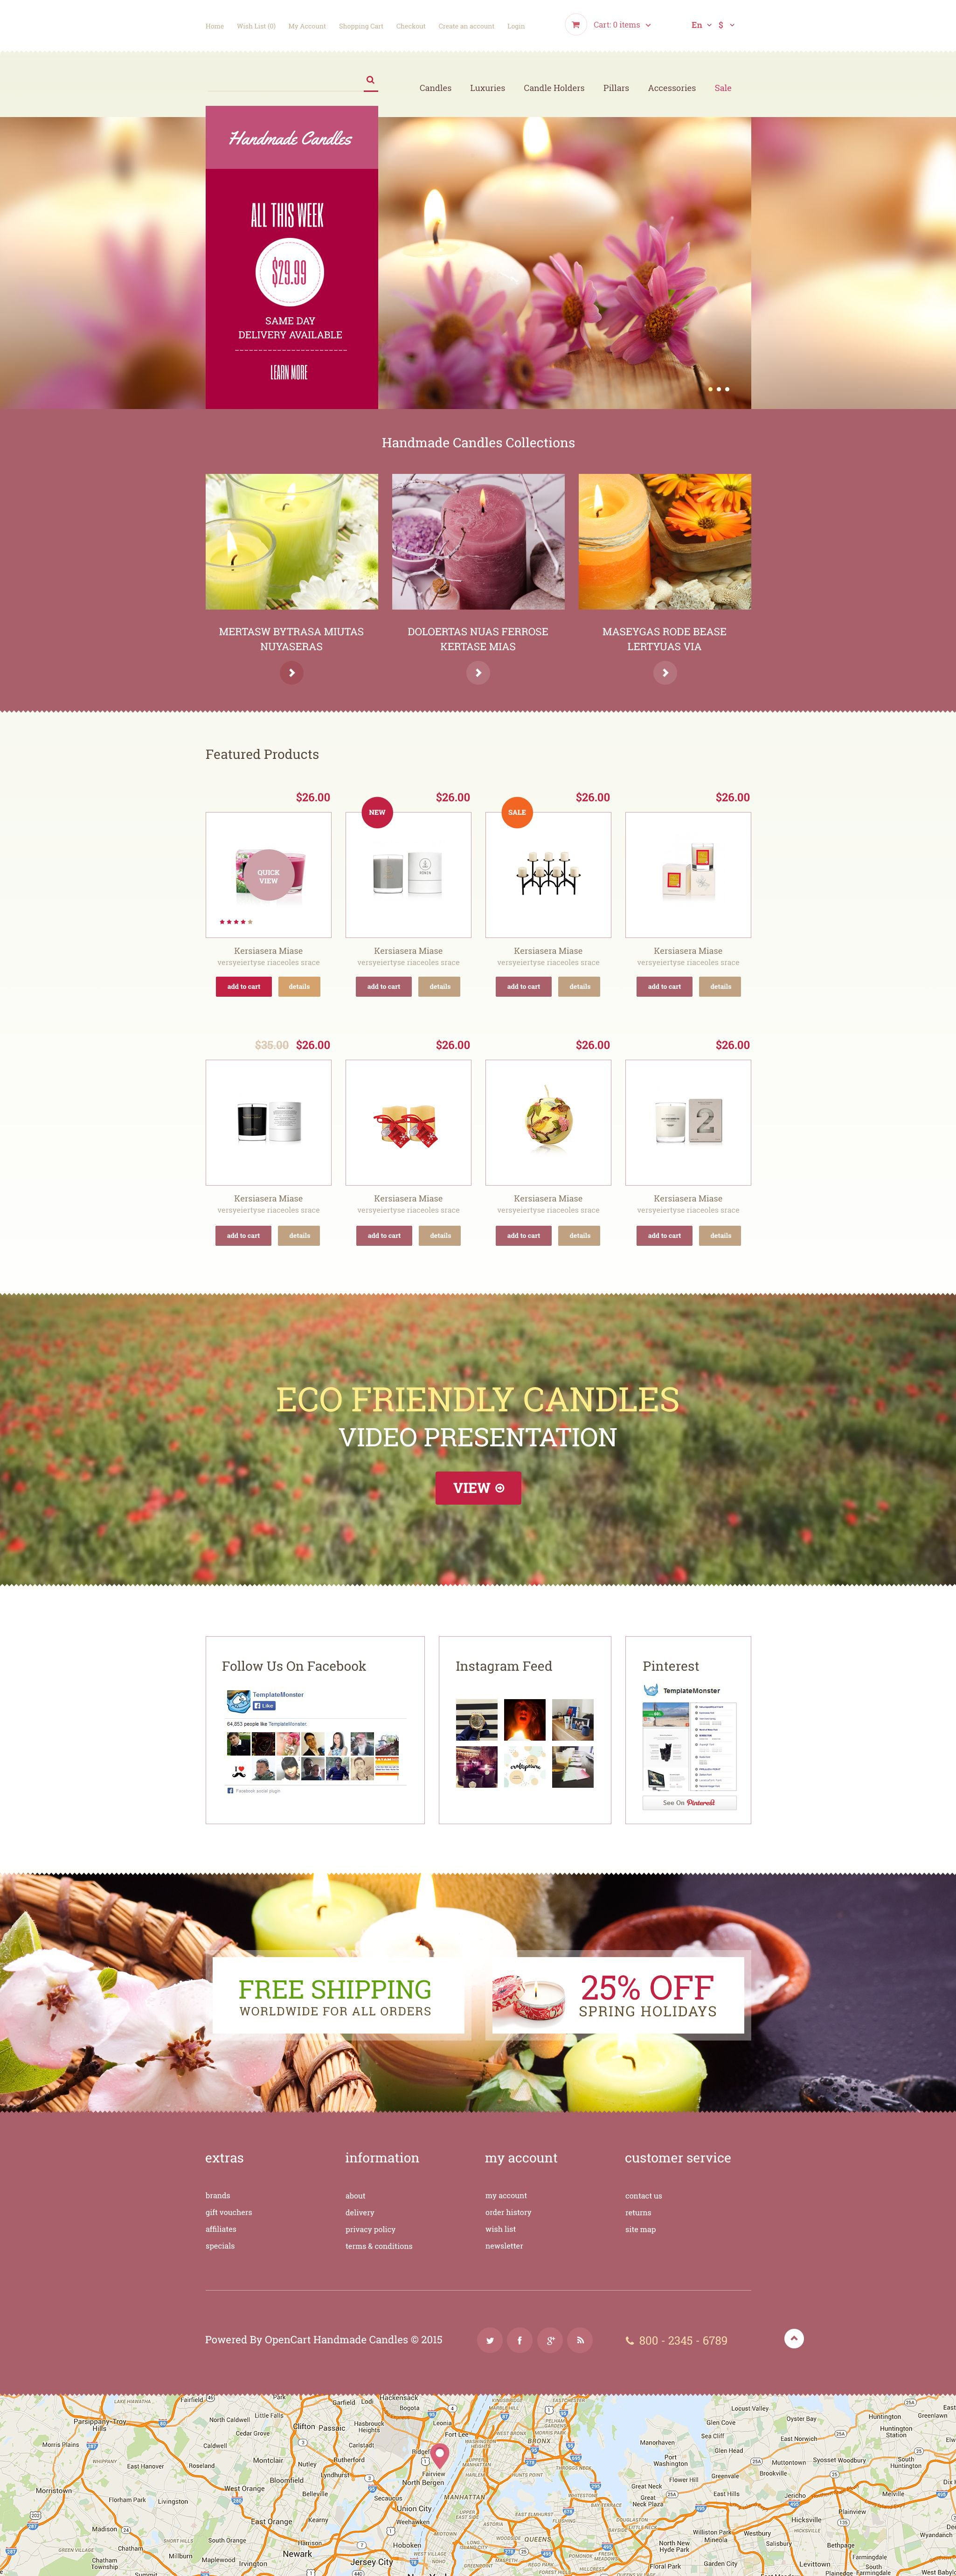 The Handmade Candles Store OpenCart Design 54024, one of the best OpenCart templates of its kind (most popular, hobbies & crafts), also known as Handmade Candles store OpenCart template, shop OpenCart template, candle OpenCart template, holders OpenCart template, unscented OpenCart template, floating OpenCart template, scented OpenCart template, jar OpenCart template, rechargeable OpenCart template, pillar OpenCart template, soy OpenCart template, taper OpenCart template, tea OpenCart template, light OpenCart template, unique  votive and related with Handmade Candles store, shop, candle, holders, unscented, floating, scented, jar, rechargeable, pillar, soy, taper, tea, light, unique  votive, etc.